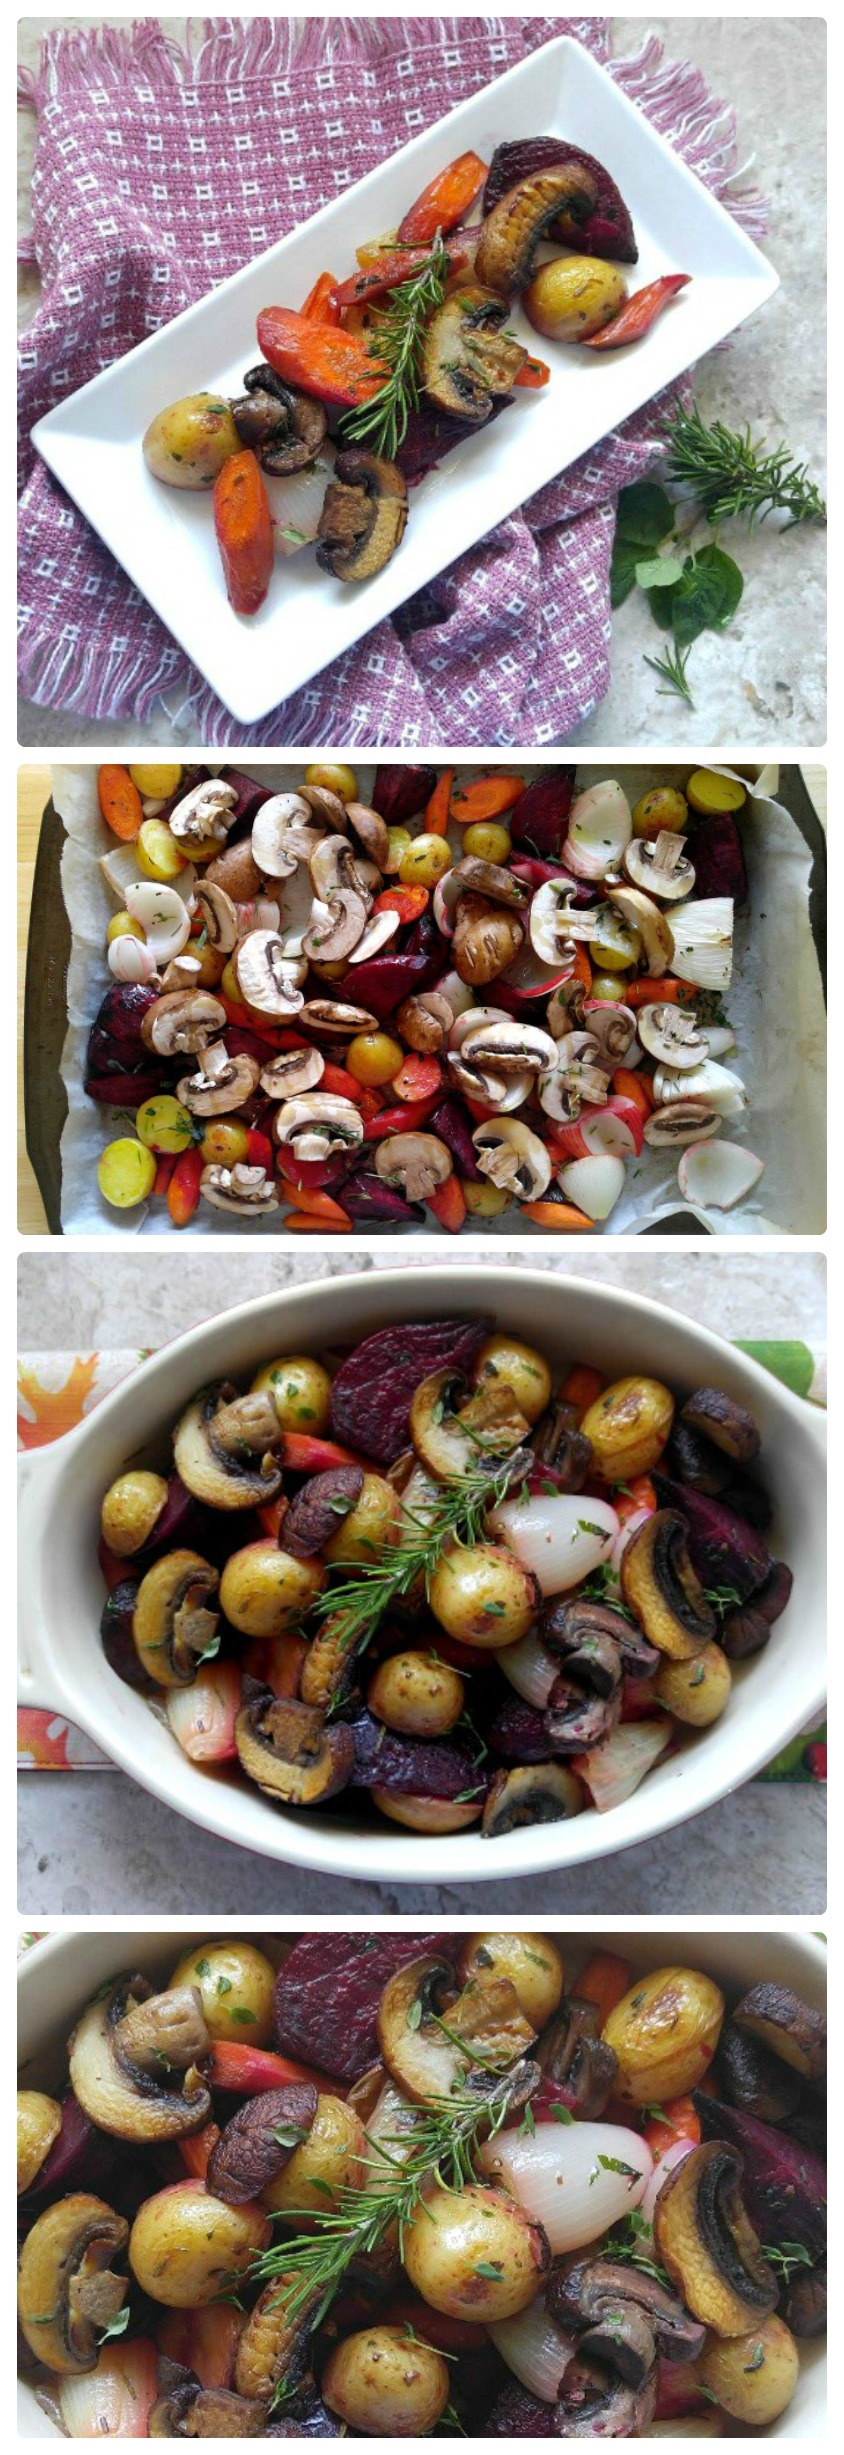 This Roasted root vegetable medley is a perfect fall side dish. Why not serve it for Thanskgiving?